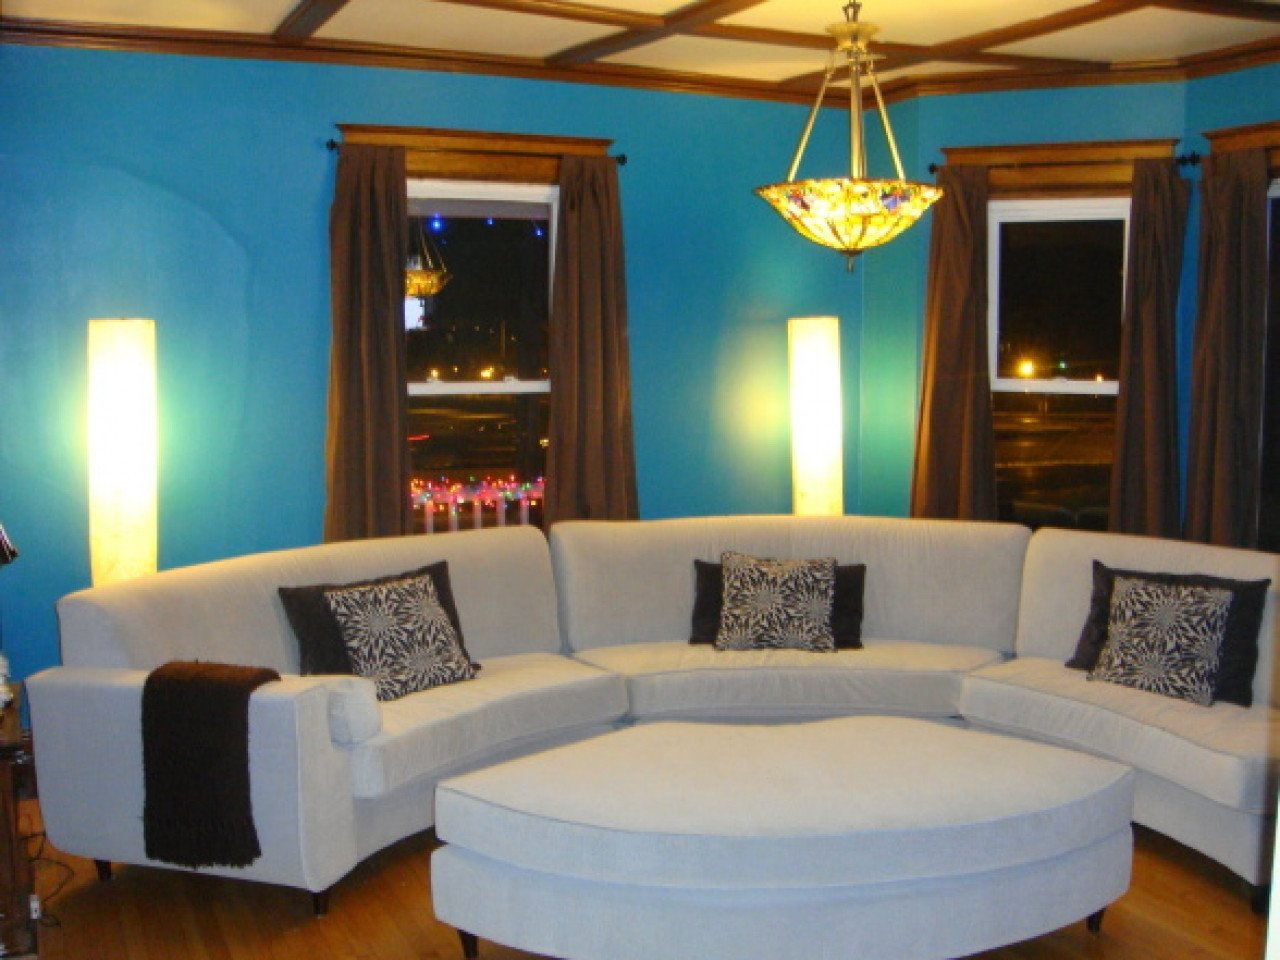 Teal Decor for Living Room Beautiful Home Paintings Decoration Ideas Teal Living Room Ideas